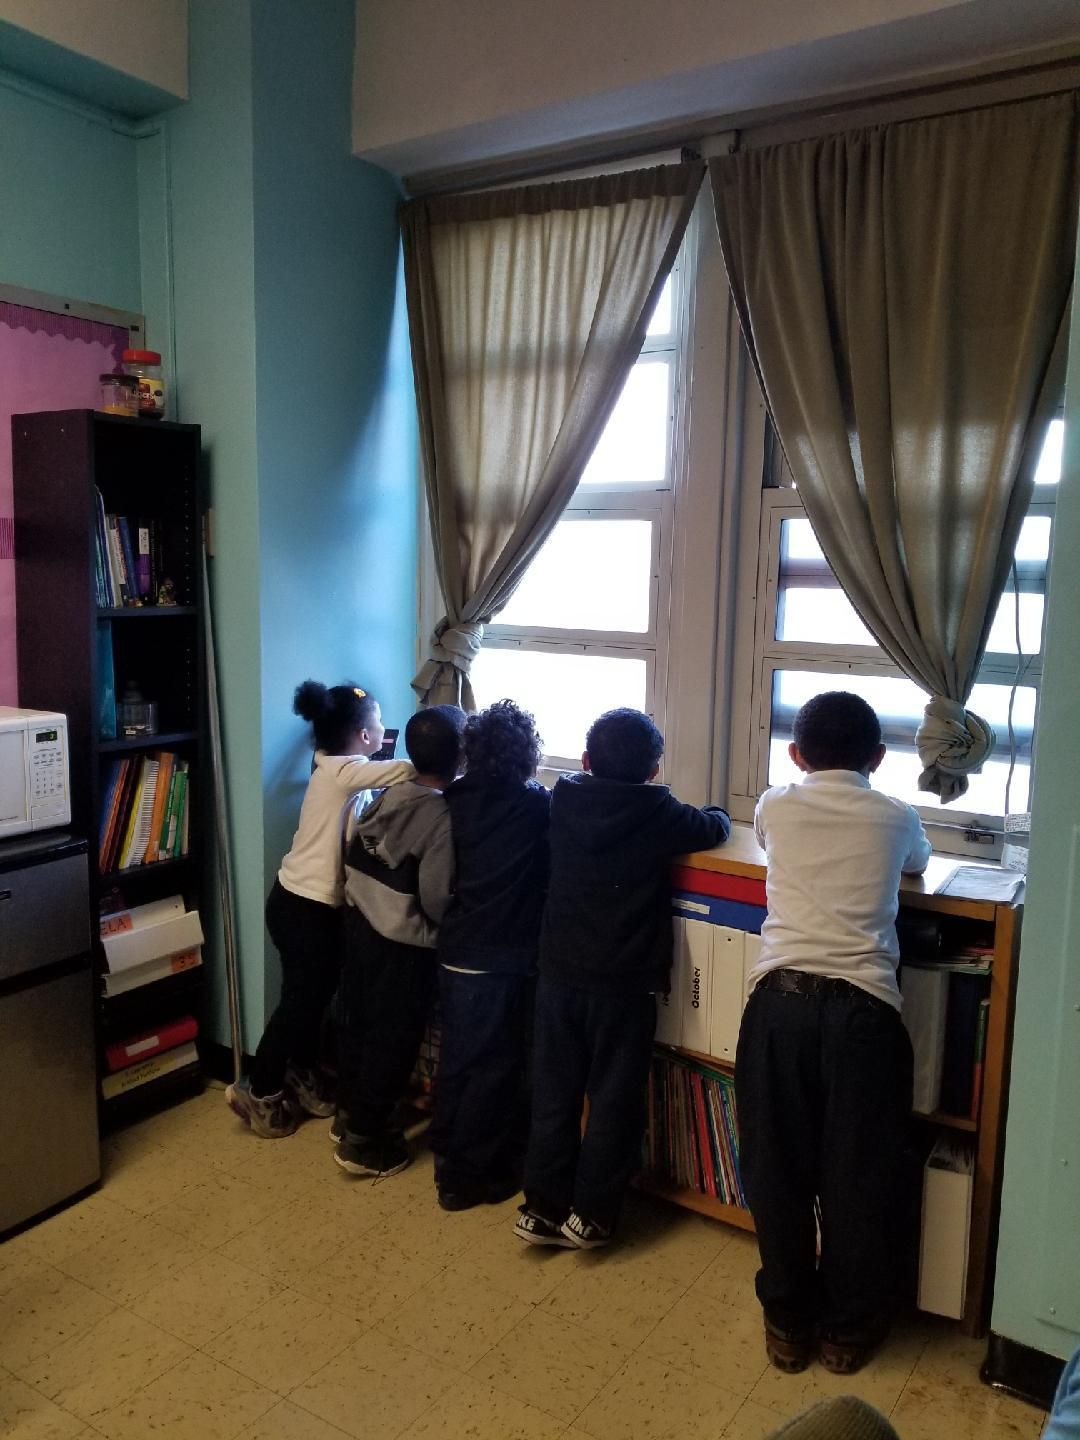 Guggenheim's students gather at the window in her classroom last school year, before the pandemic.